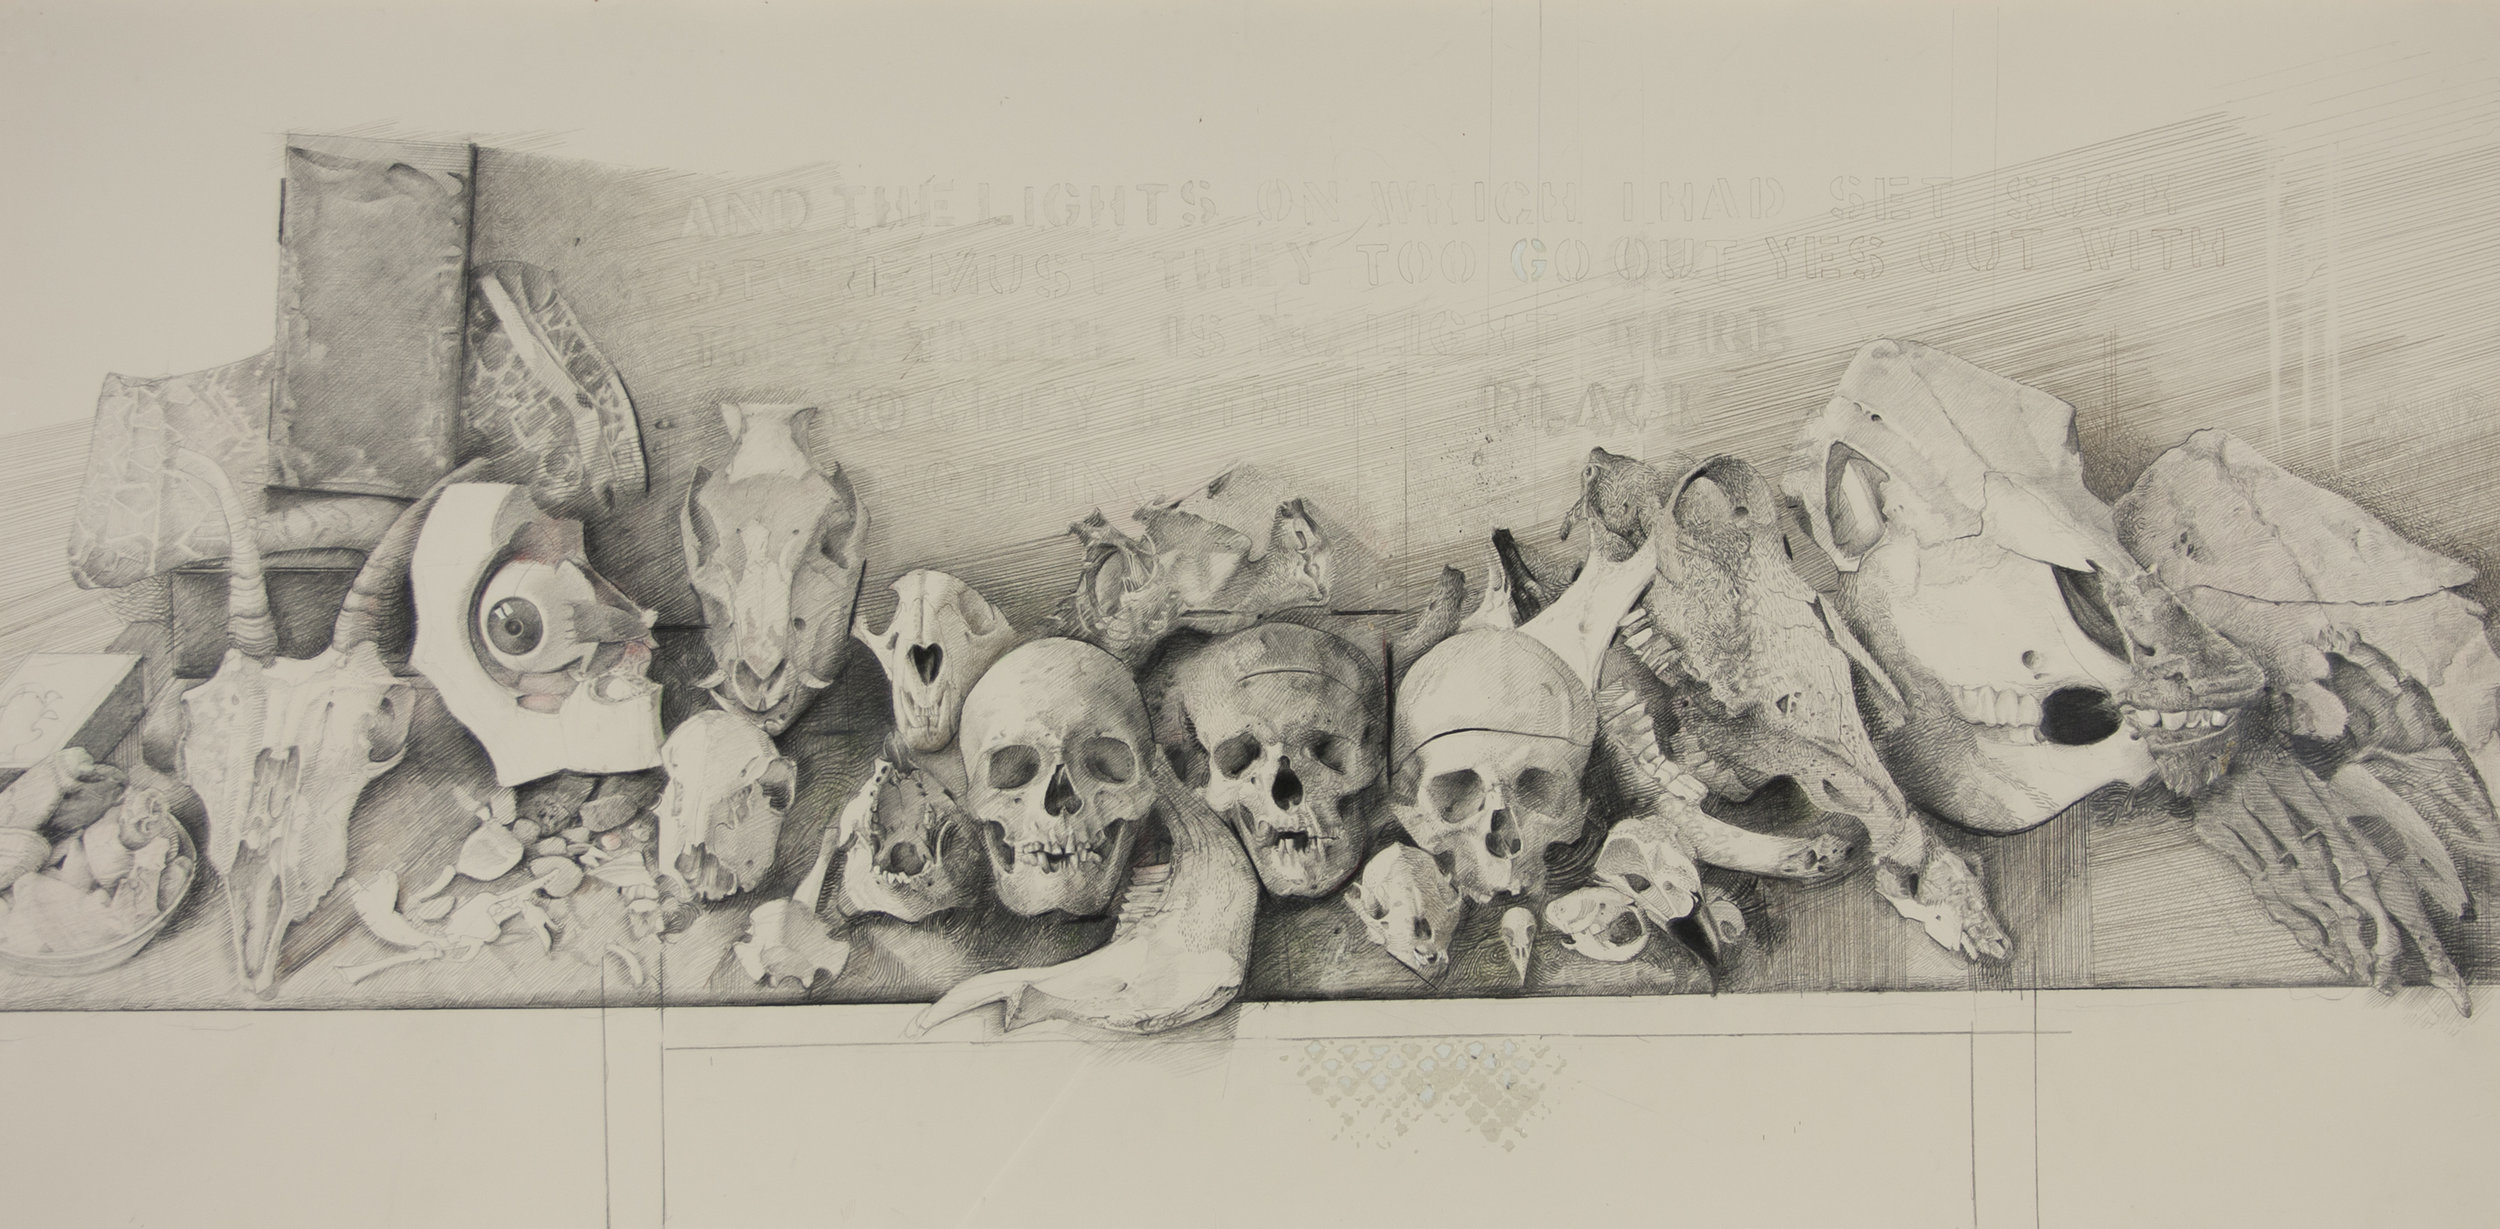 Skulls , c. 1989, JULES KIRSCHENBAUM, Museum purchase. 2009.002